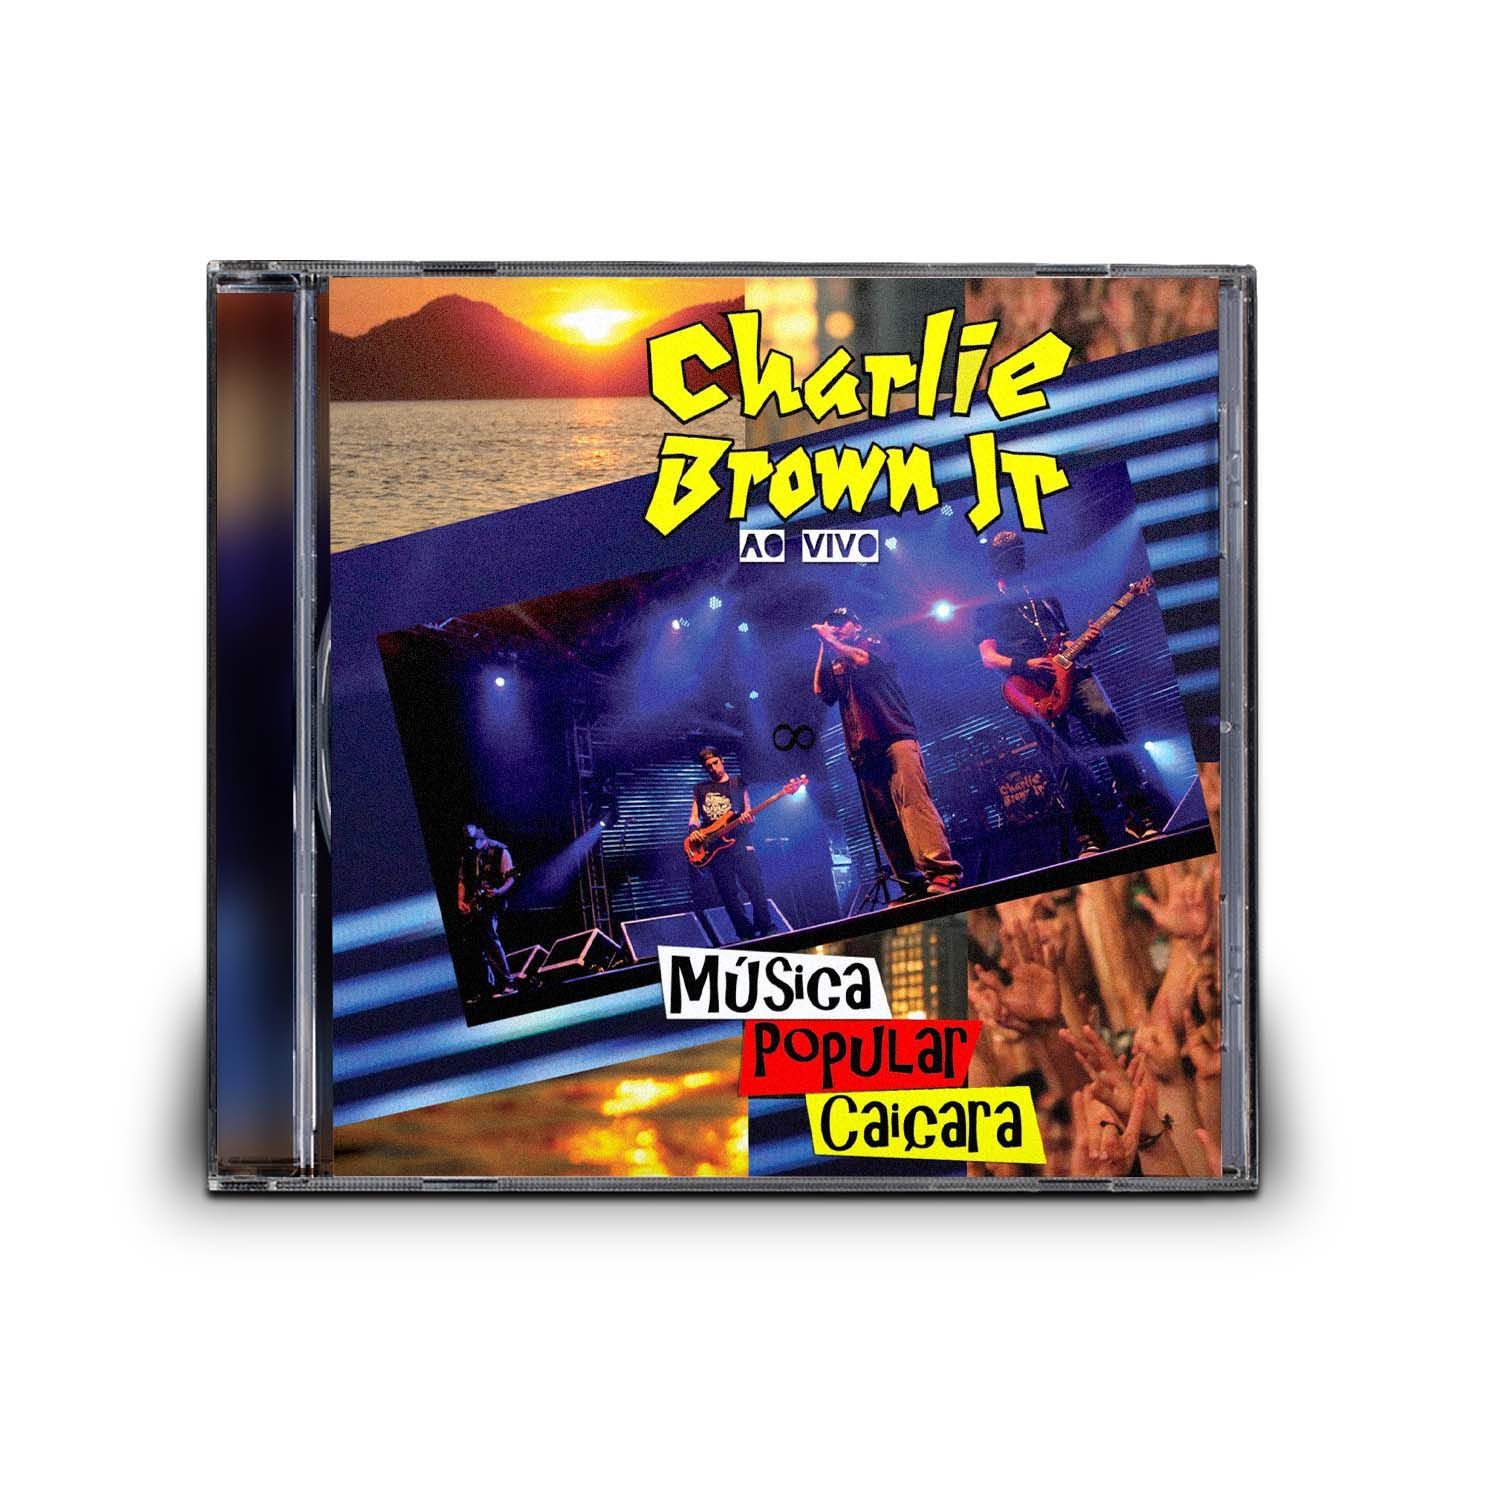 CD CHARLIE BROWN JR - MUSICA POPULAR CAIÇARA VOL. 2